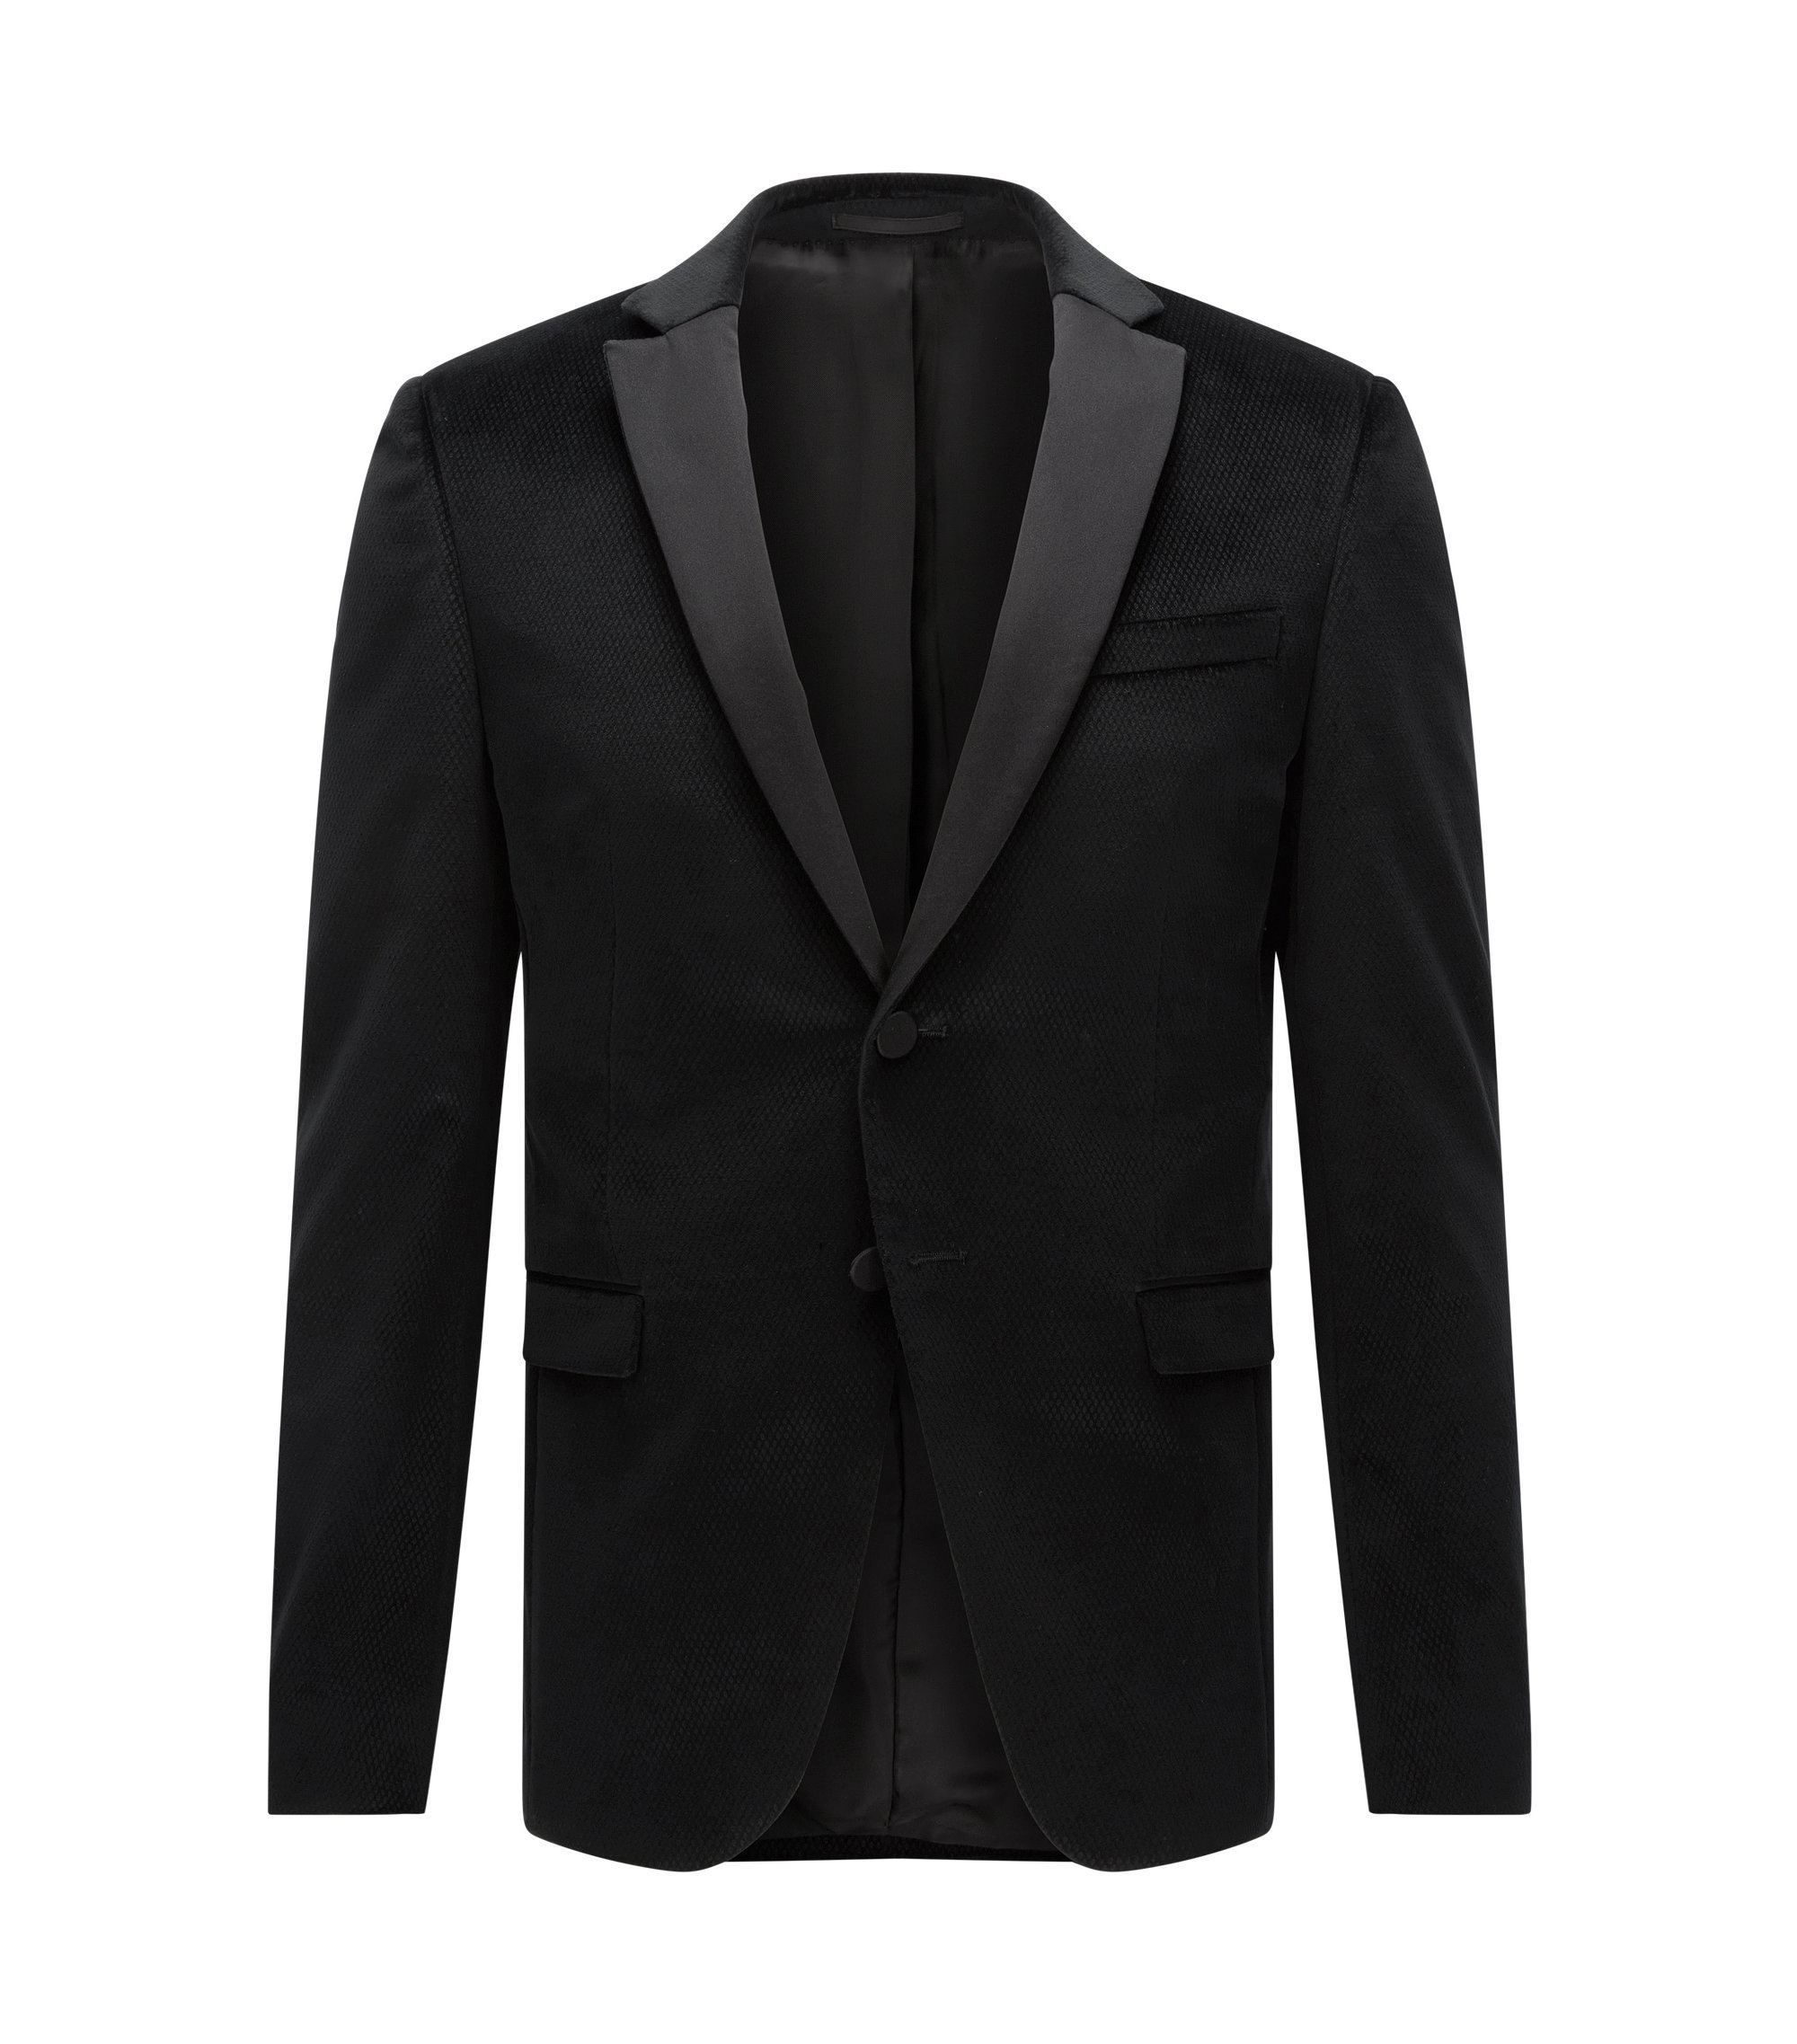 Diamond Cotton Dinner Jacket, Extra Slim Fit | Rainald, Black